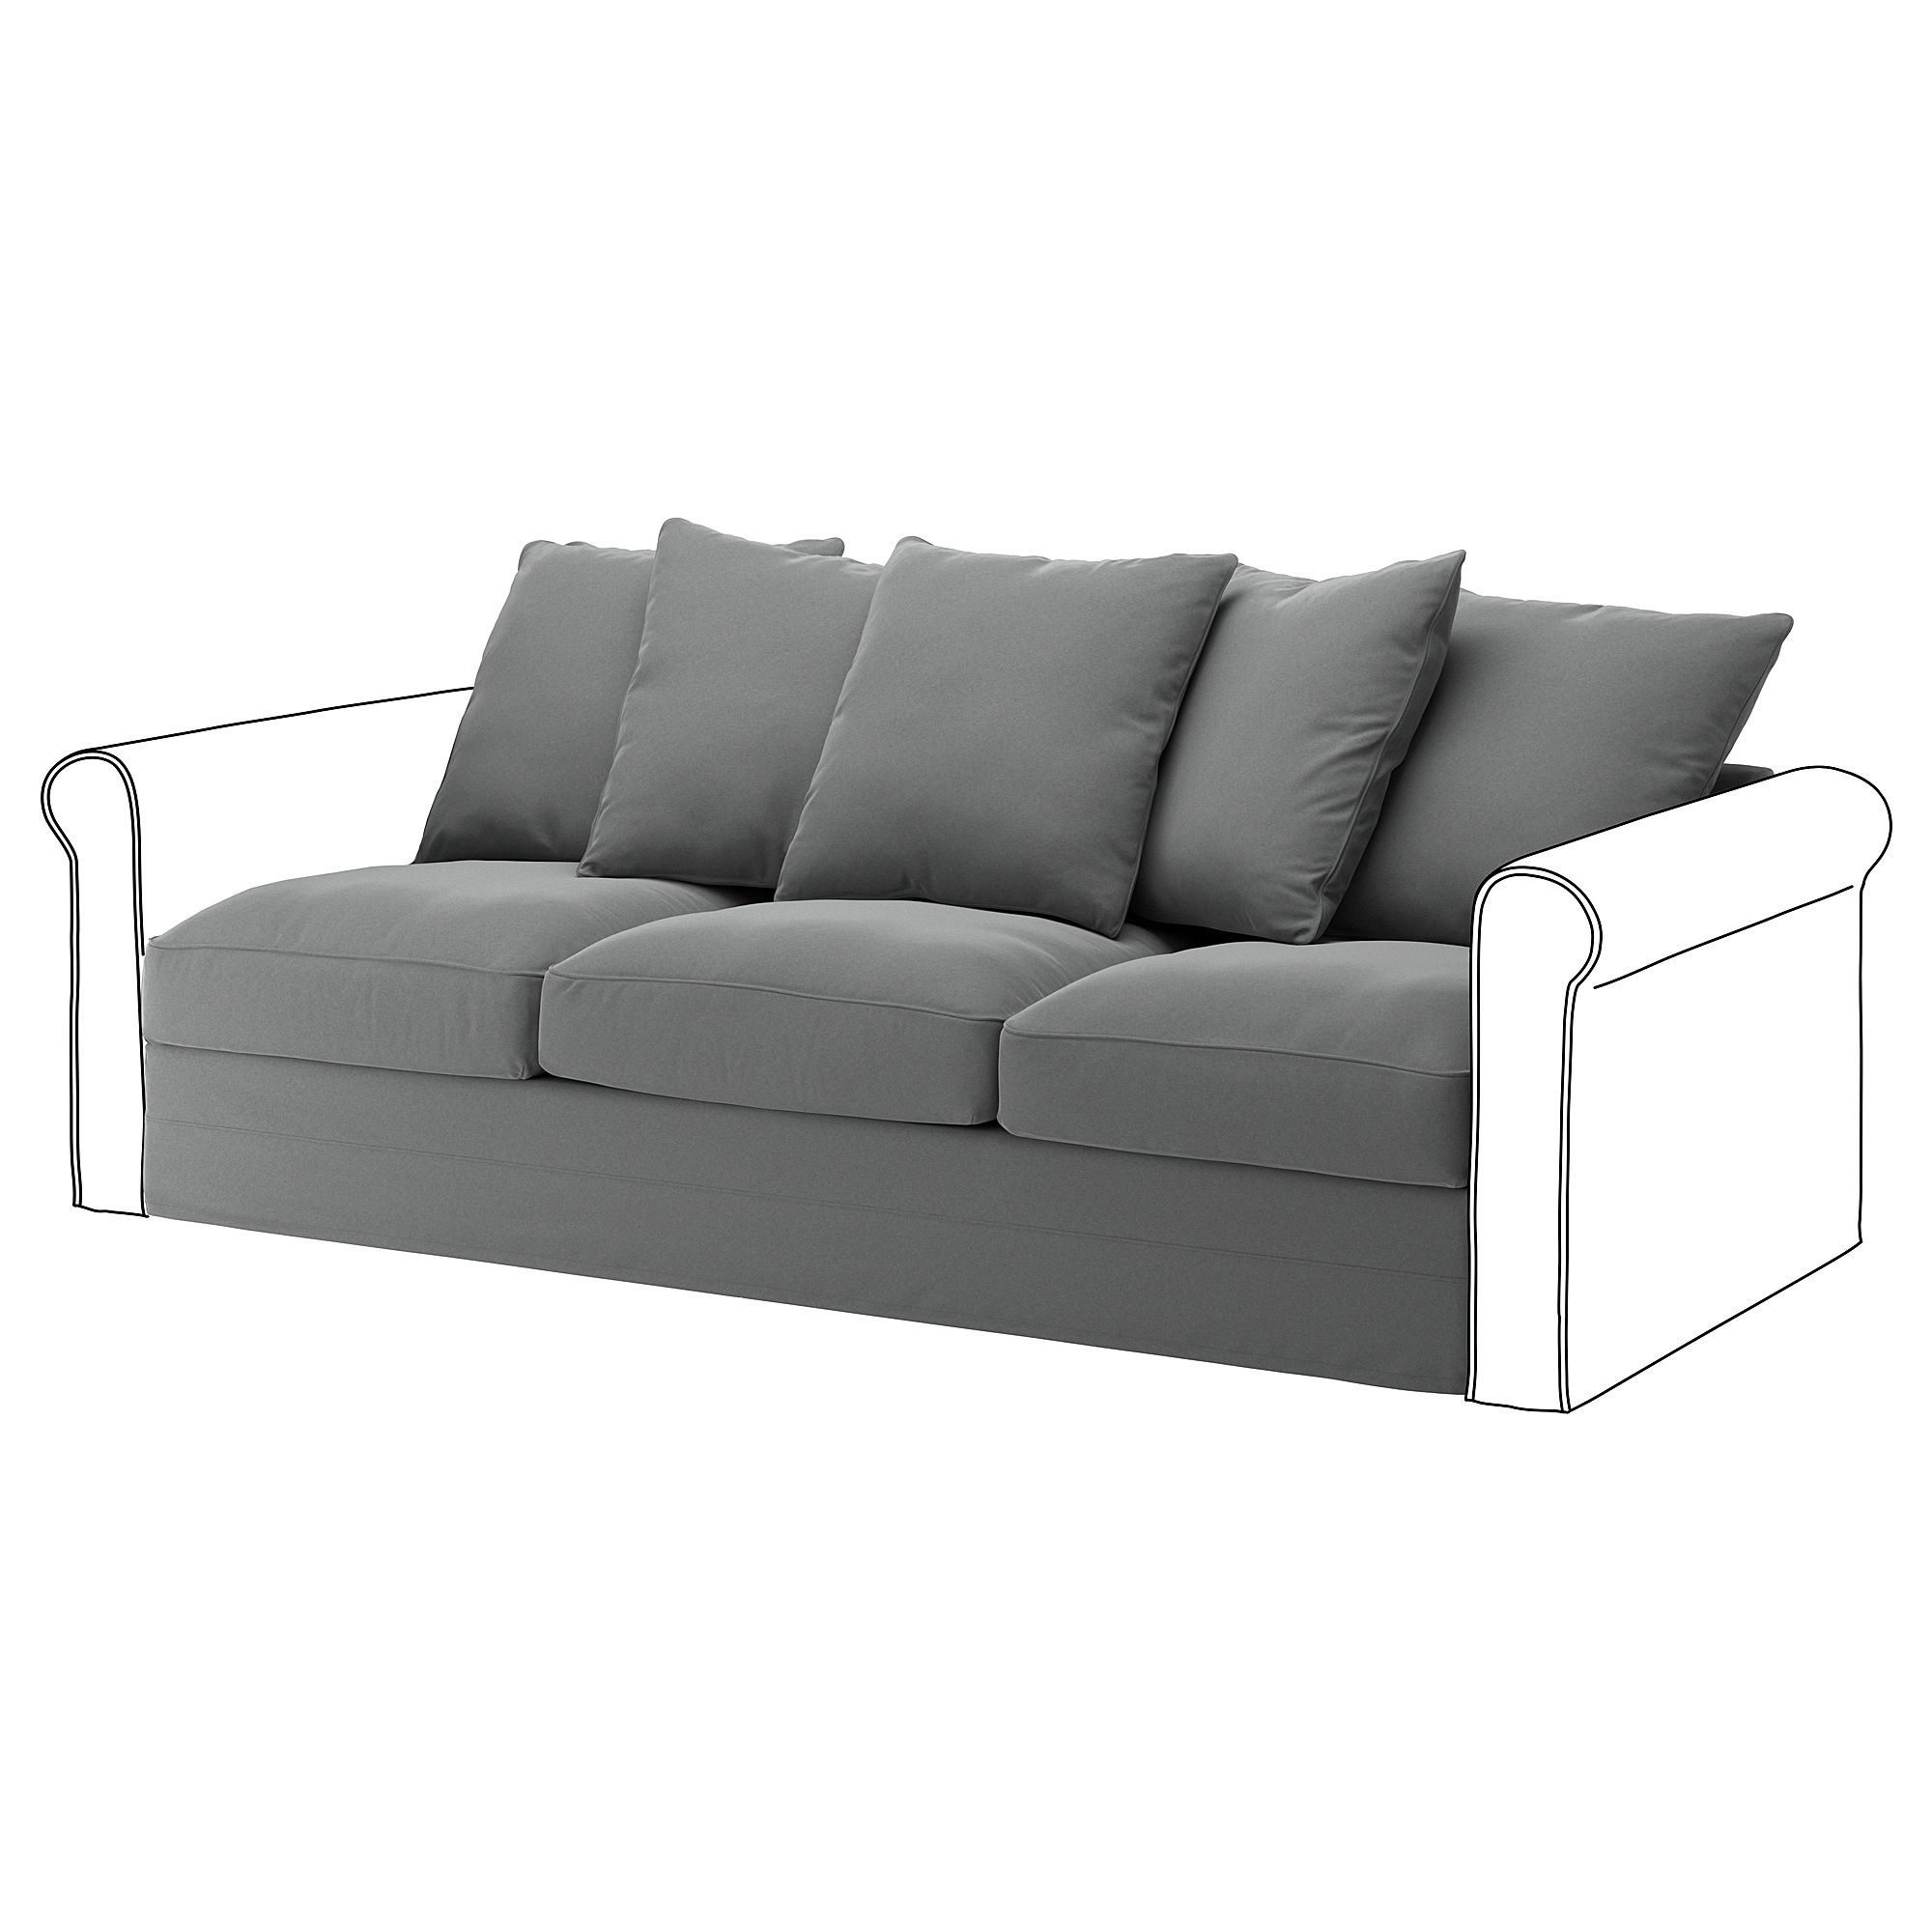 Us Furniture And Home Furnishings Ikea Ikea Sofa Sofa Frame